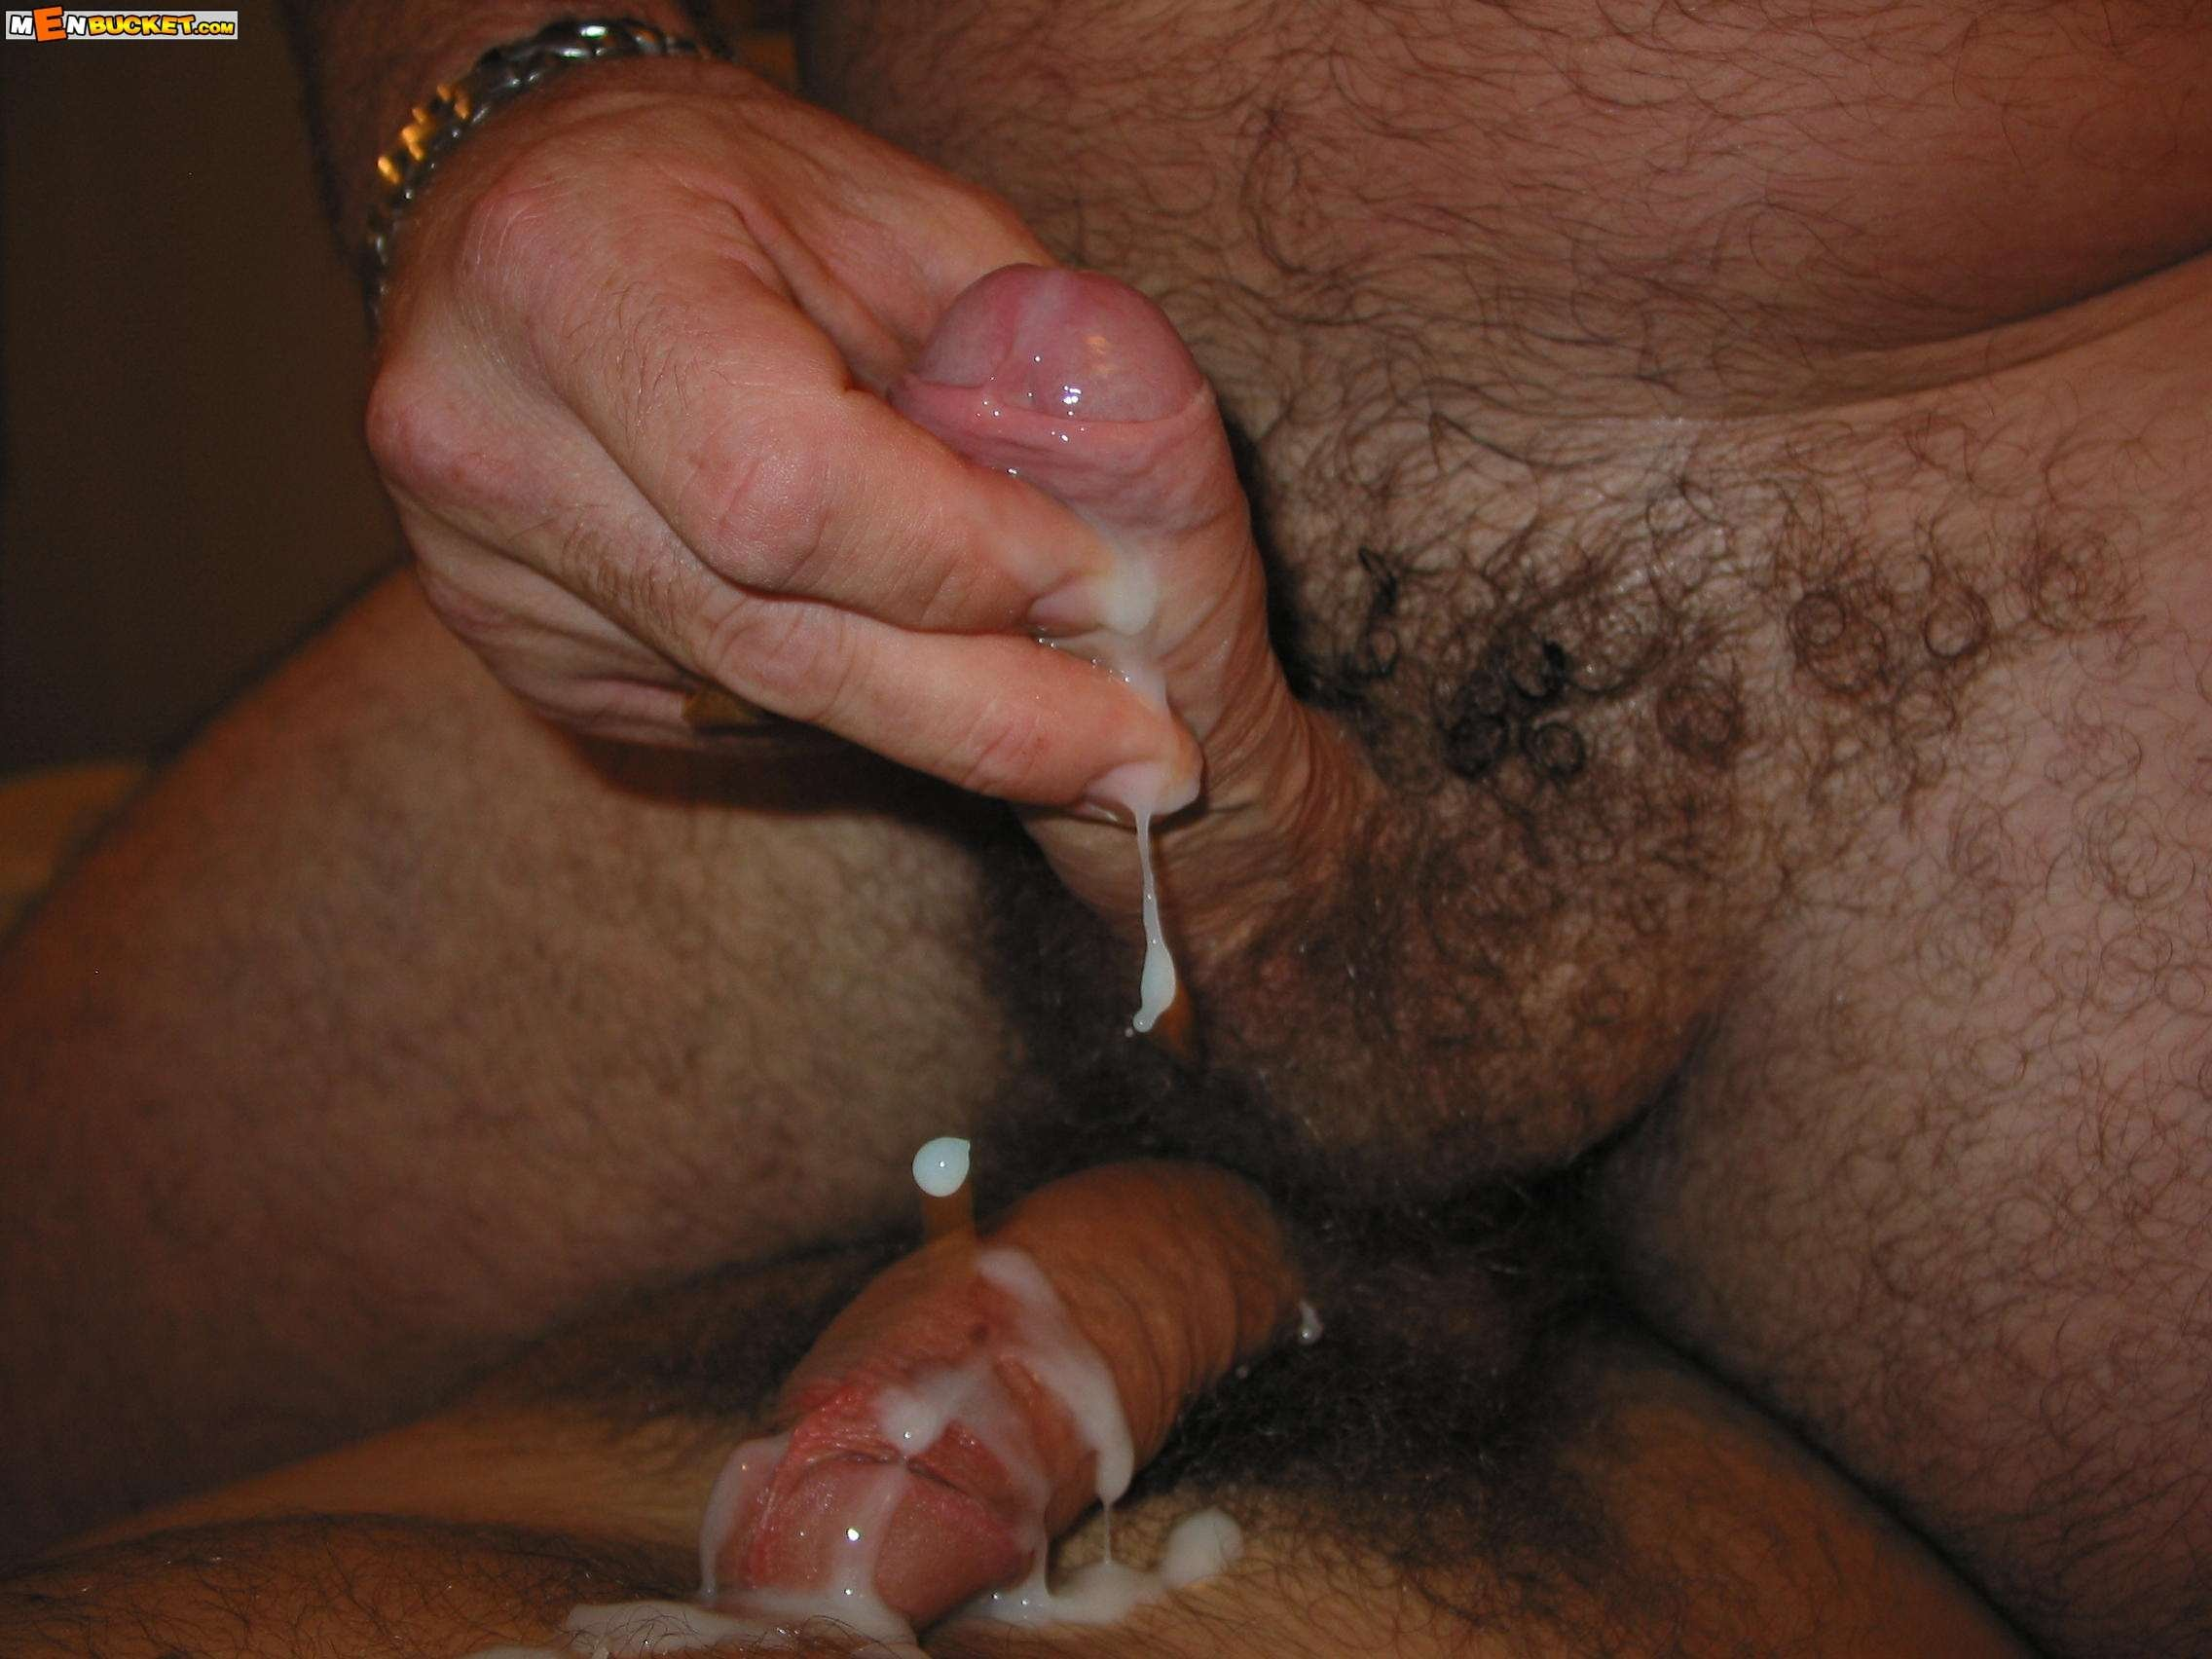 Dick ejaculation on girl hair — photo 5